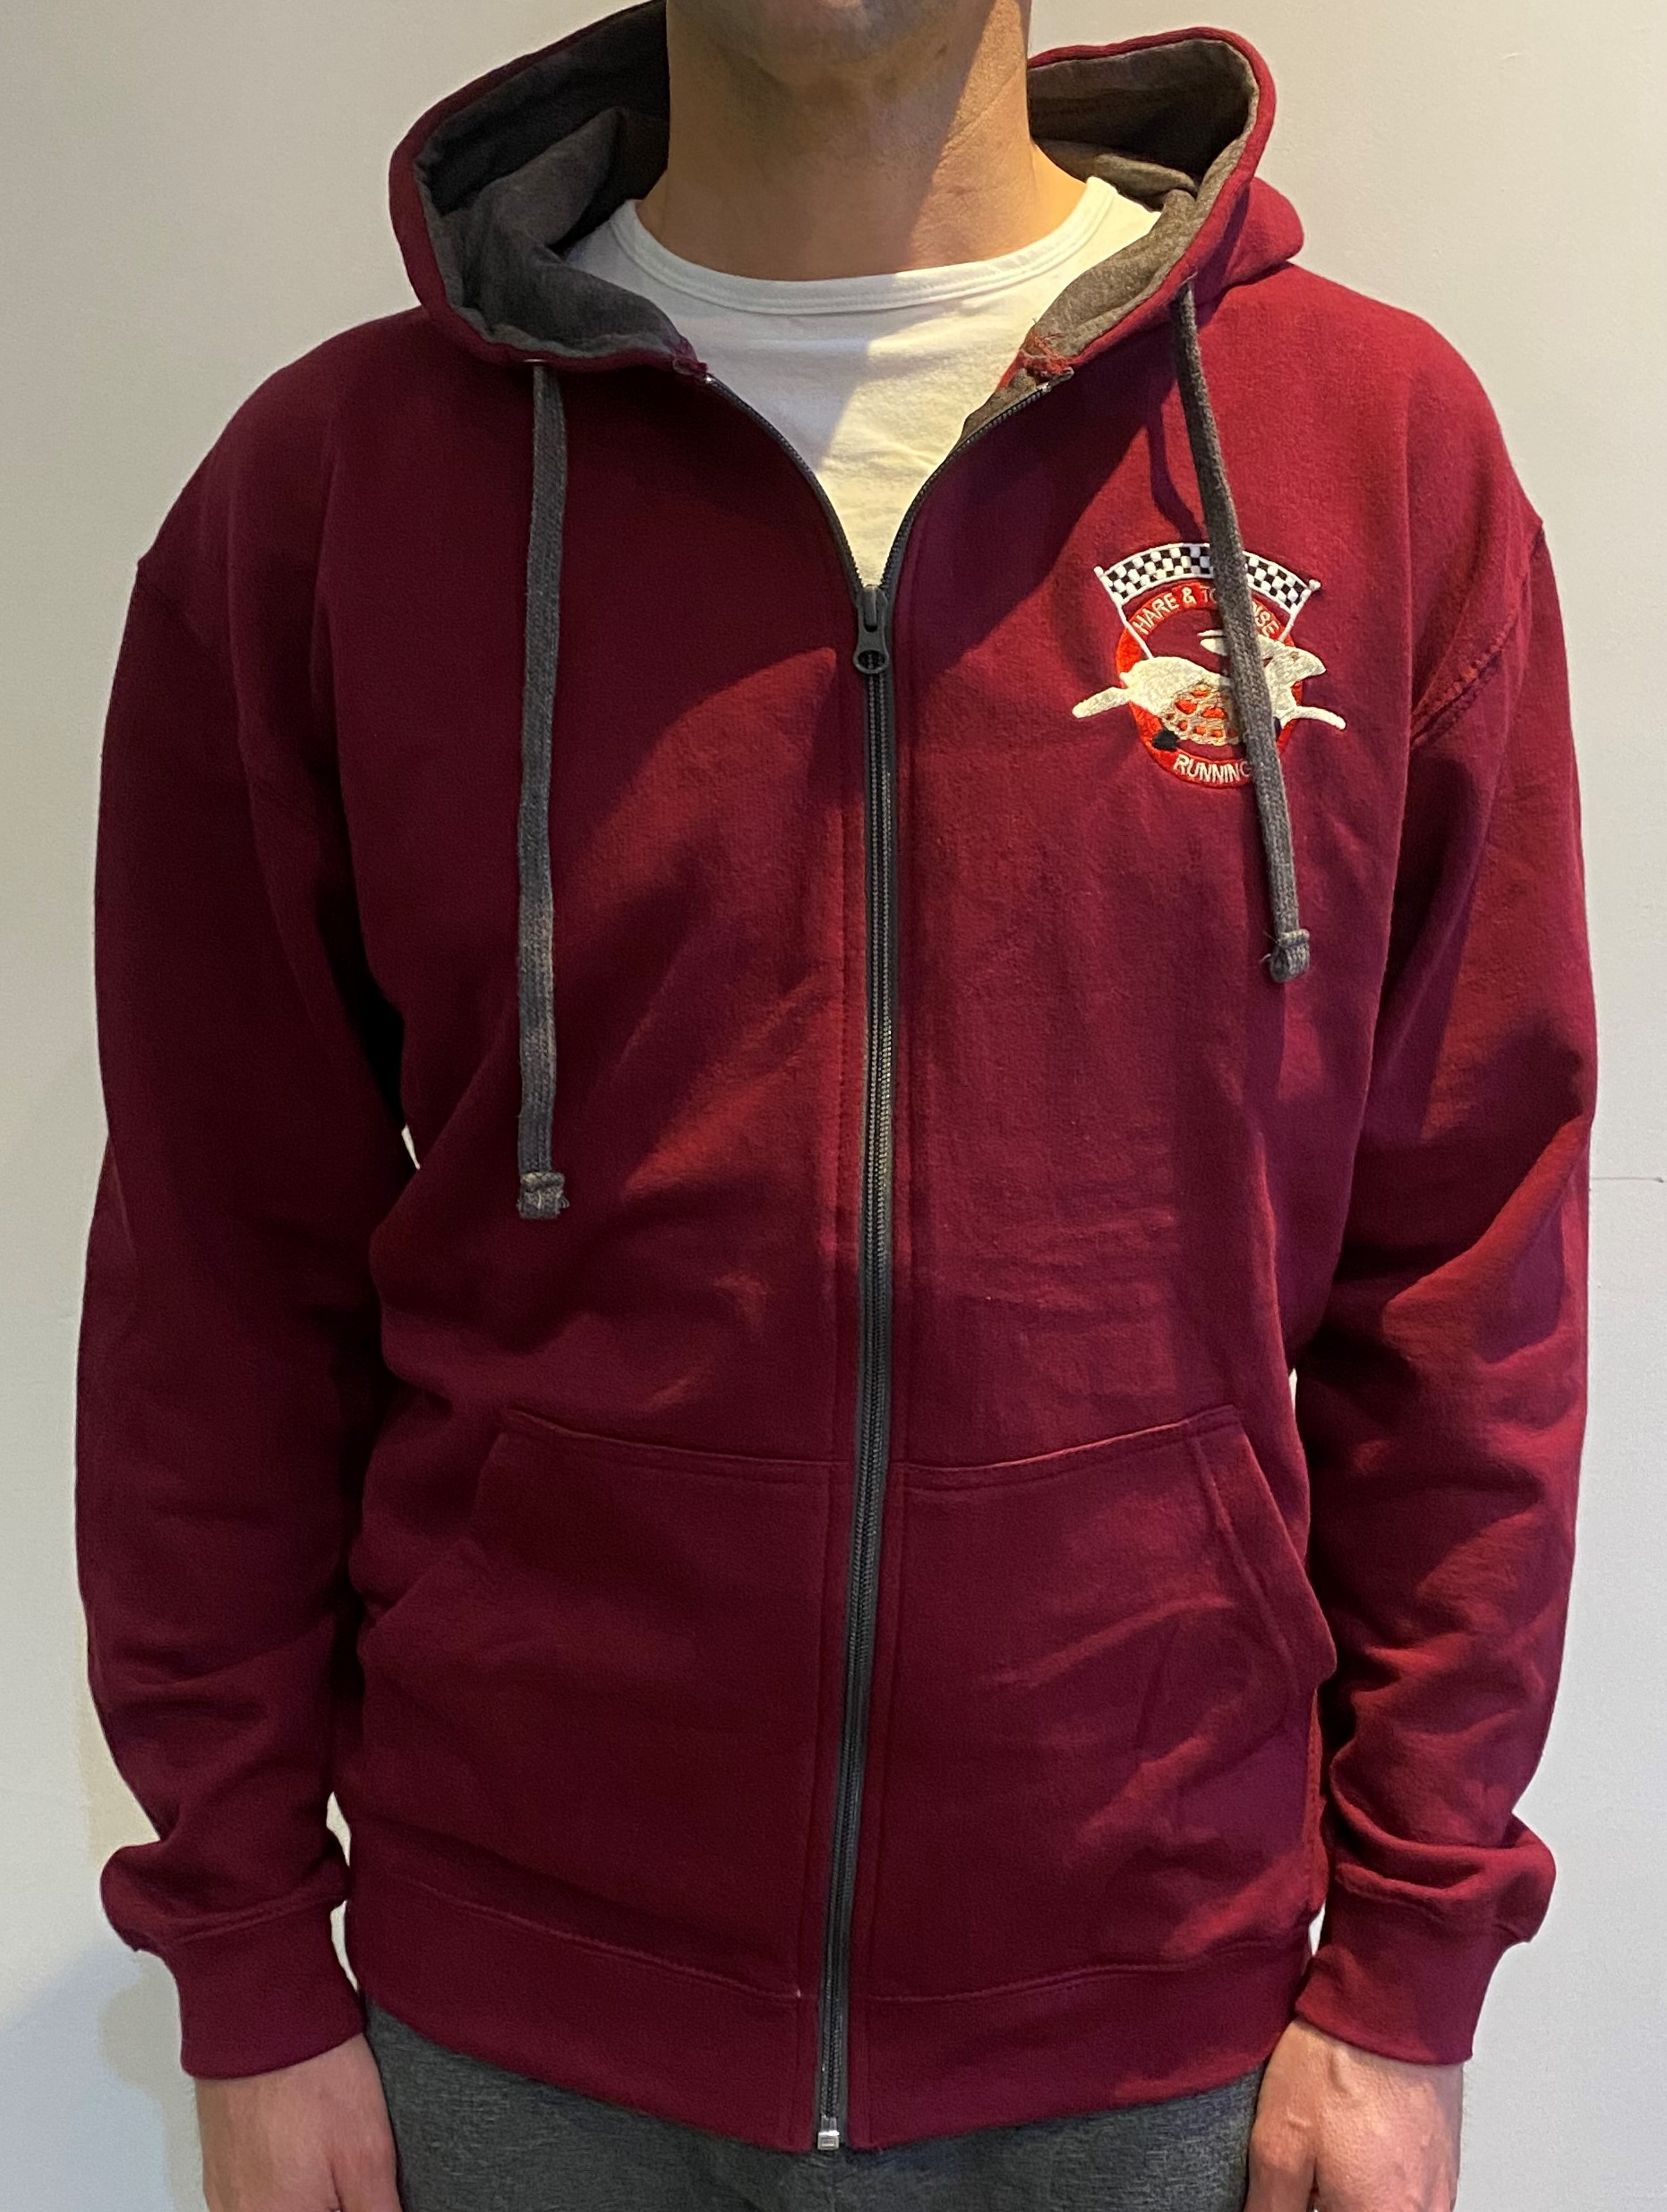 Hare & Tortoise Running Embroidered Zoodie - Burgundy & Grey